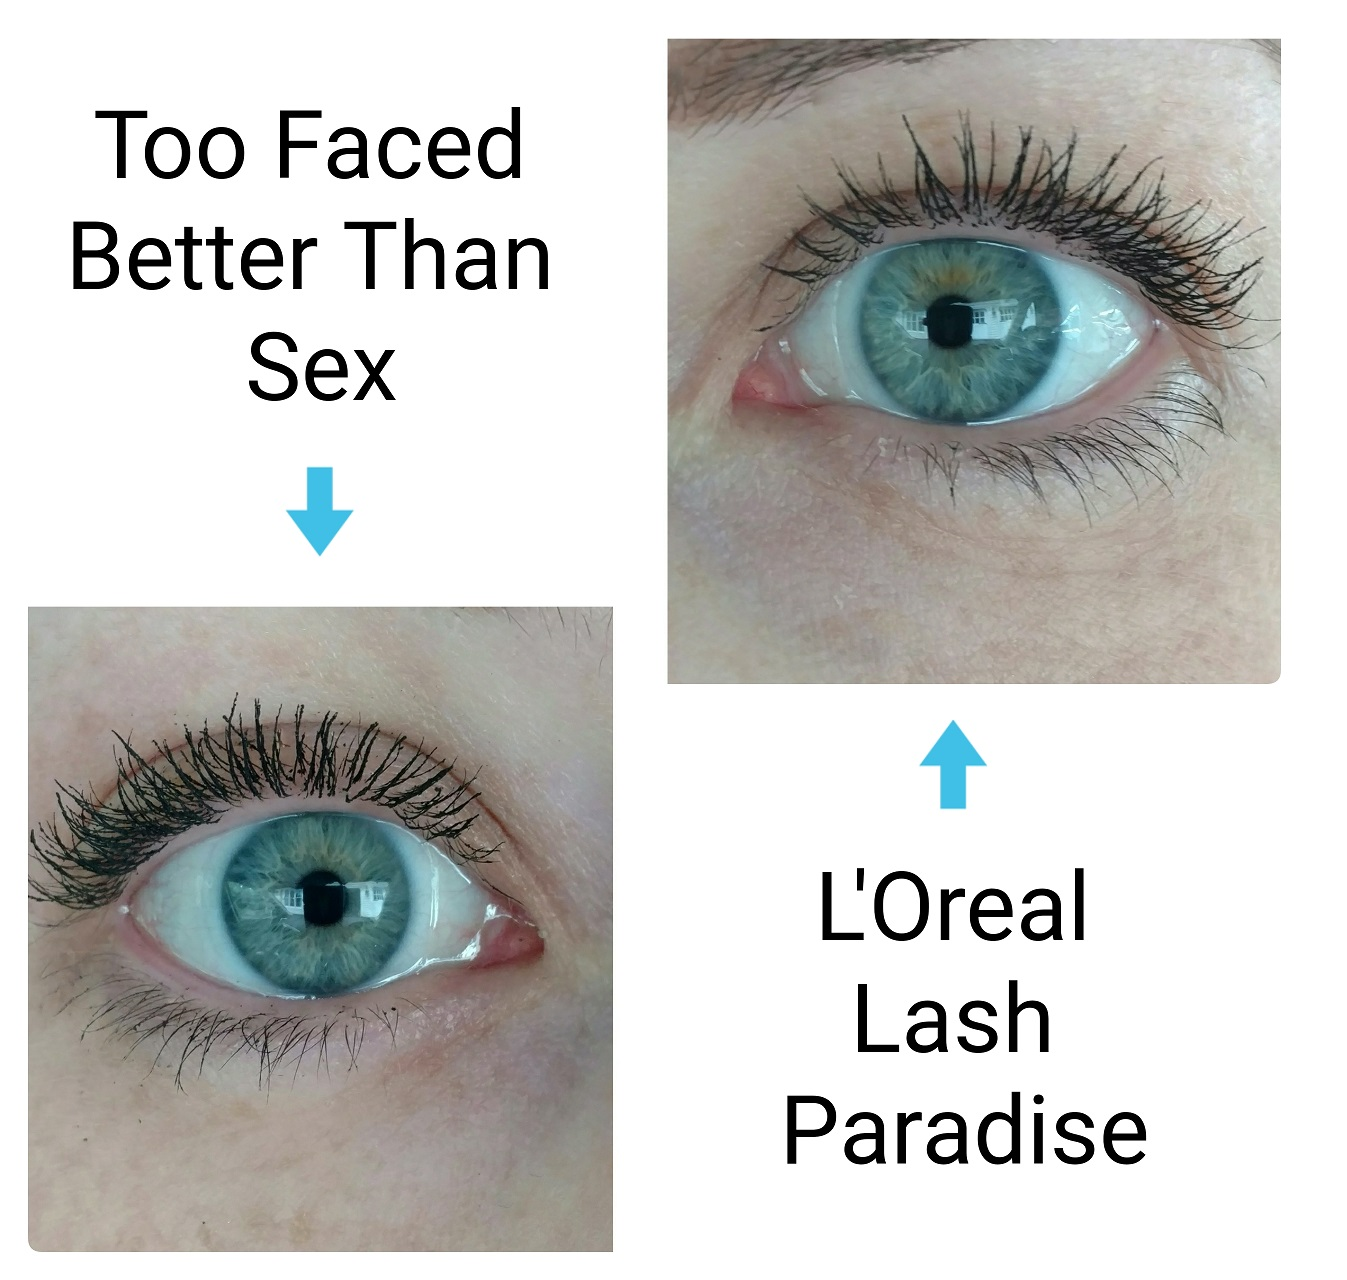 loreal lash paradise vs too faced better than sex